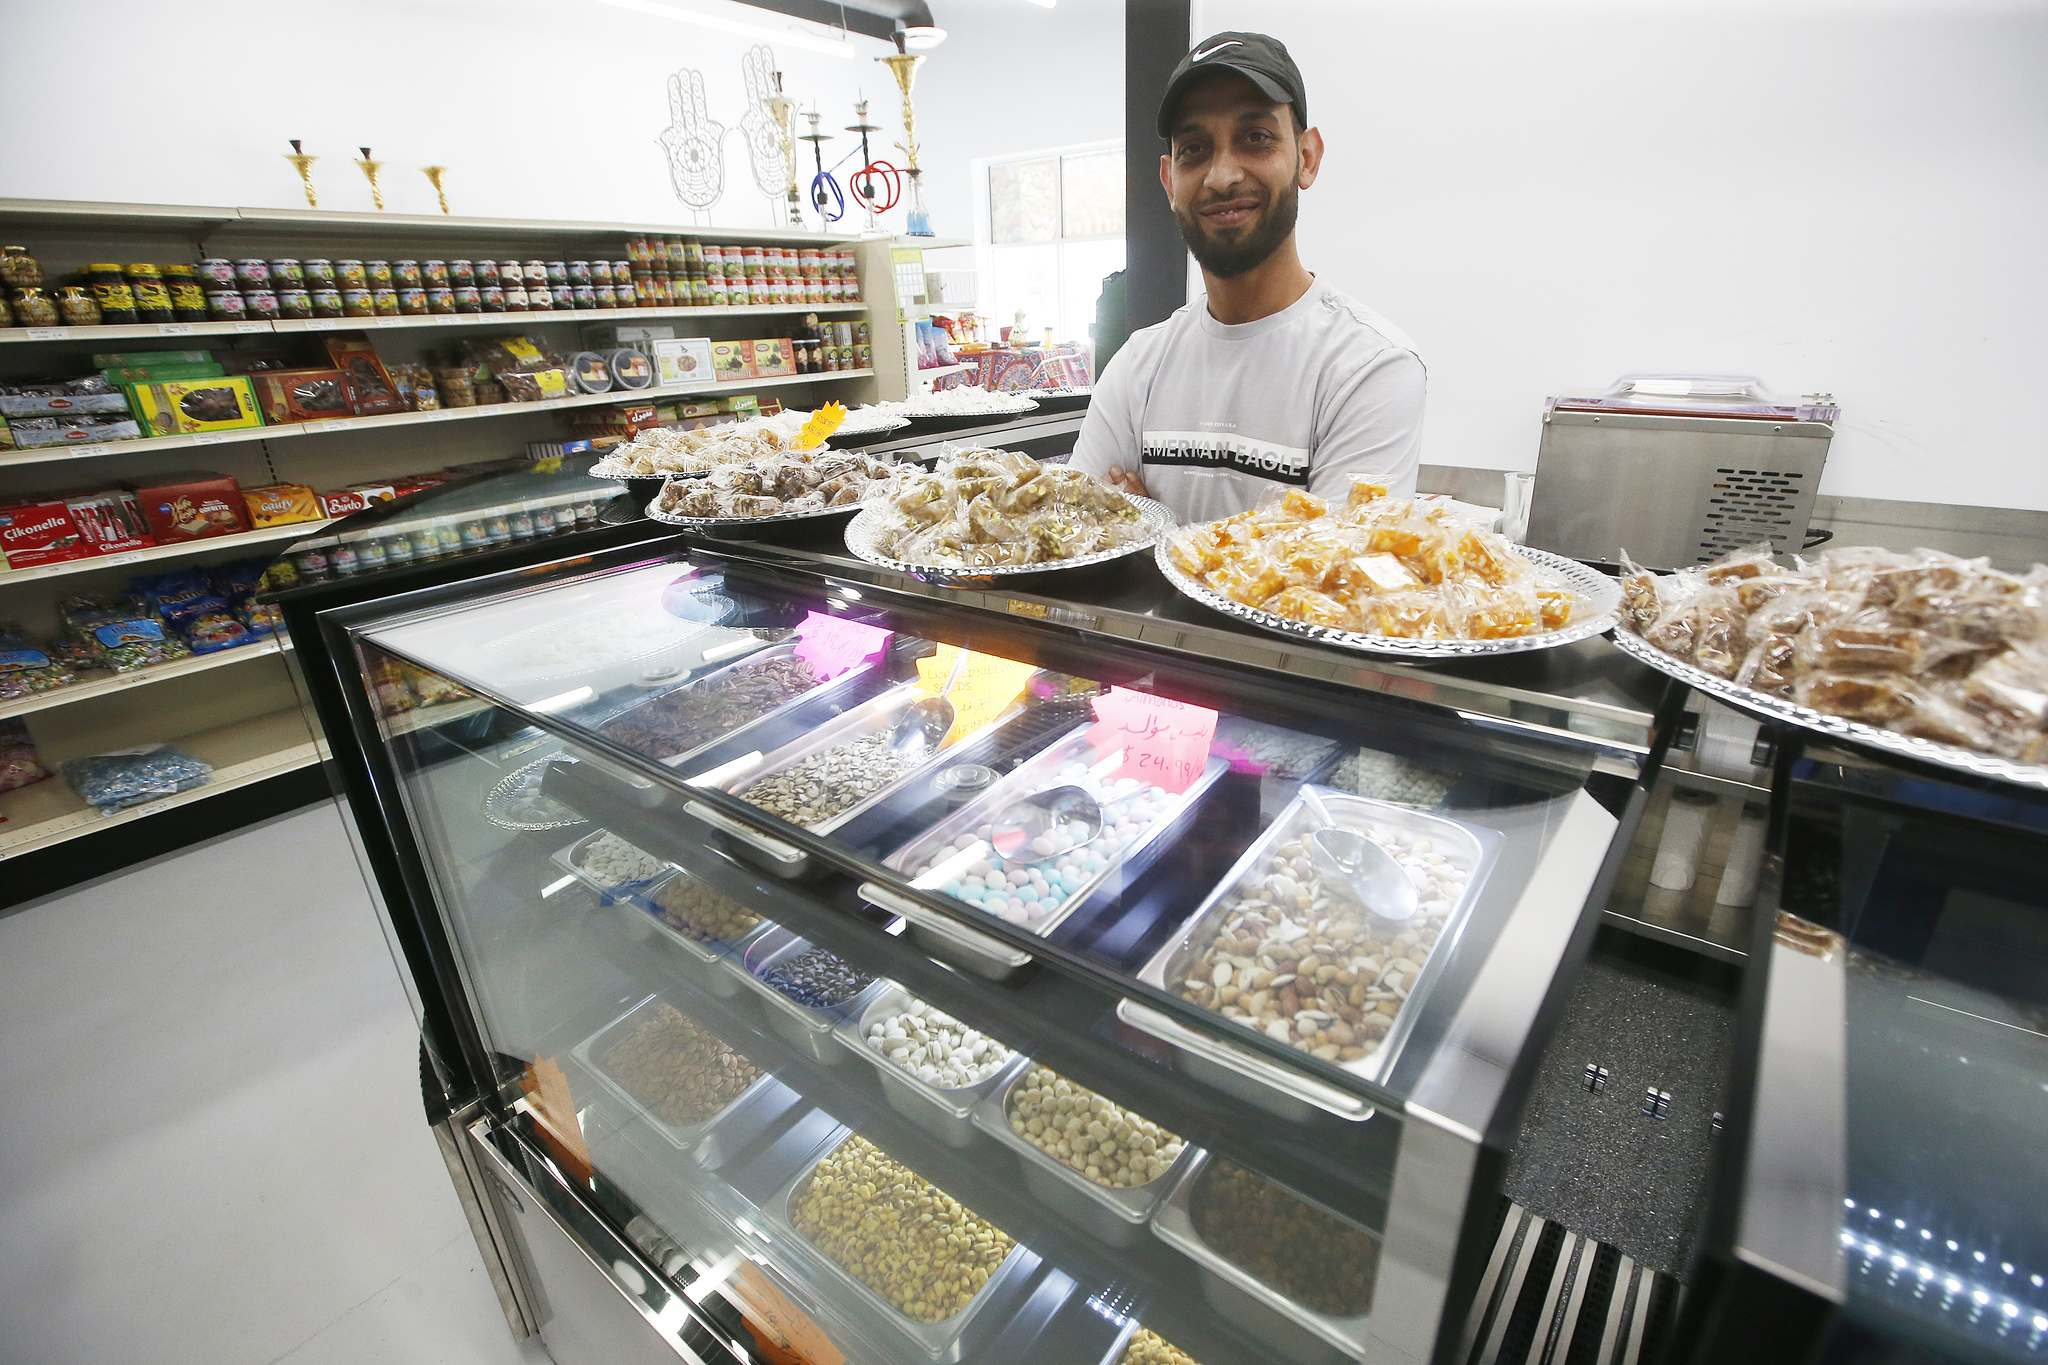 JOHN WOODS / WINNIPEG FREE PRESS</p><p>Mohammad Naser, owner of Tarboosh Middle Eastern, in his new grocery store that specializes in Middle Eastern food.</p>